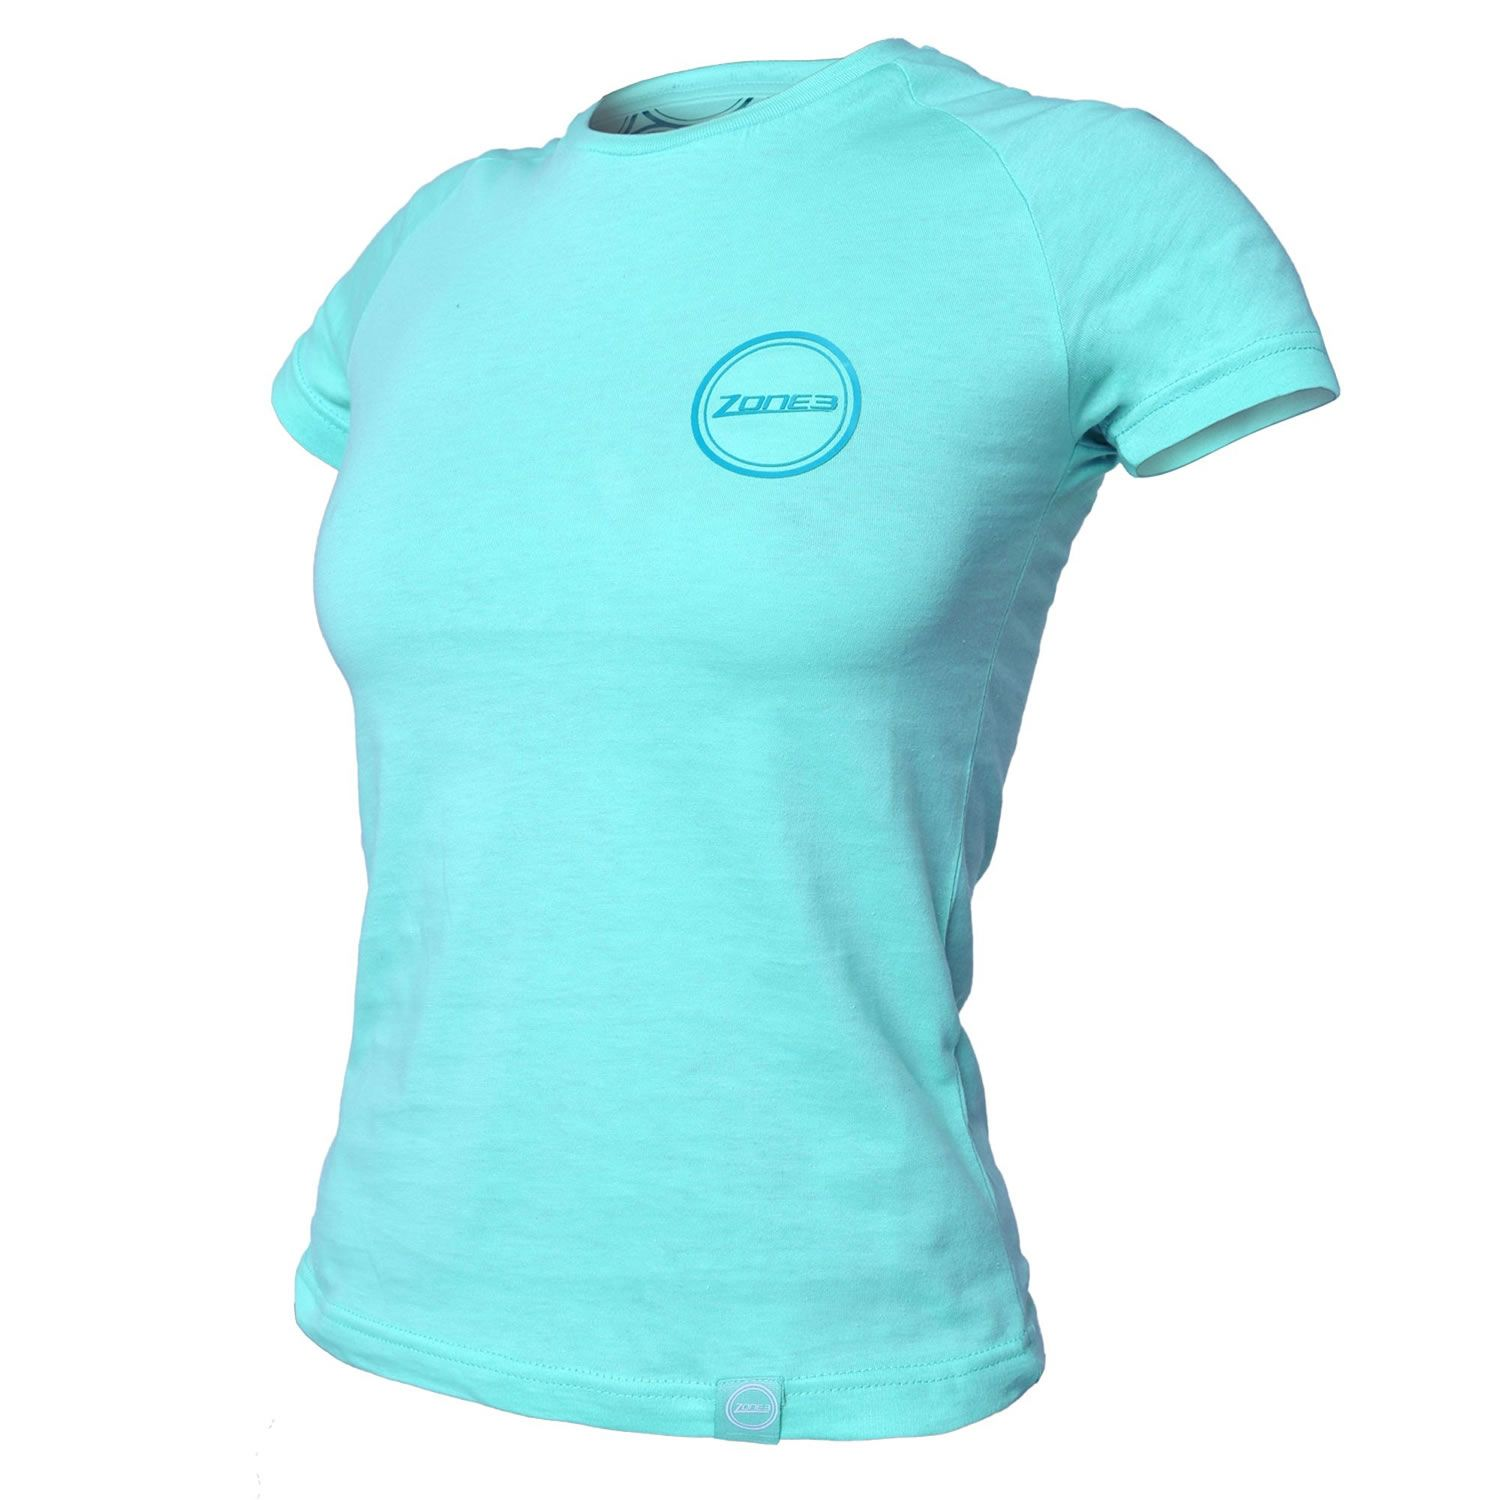 Cotton S/S Tee Damen - Zone3 - zm16595